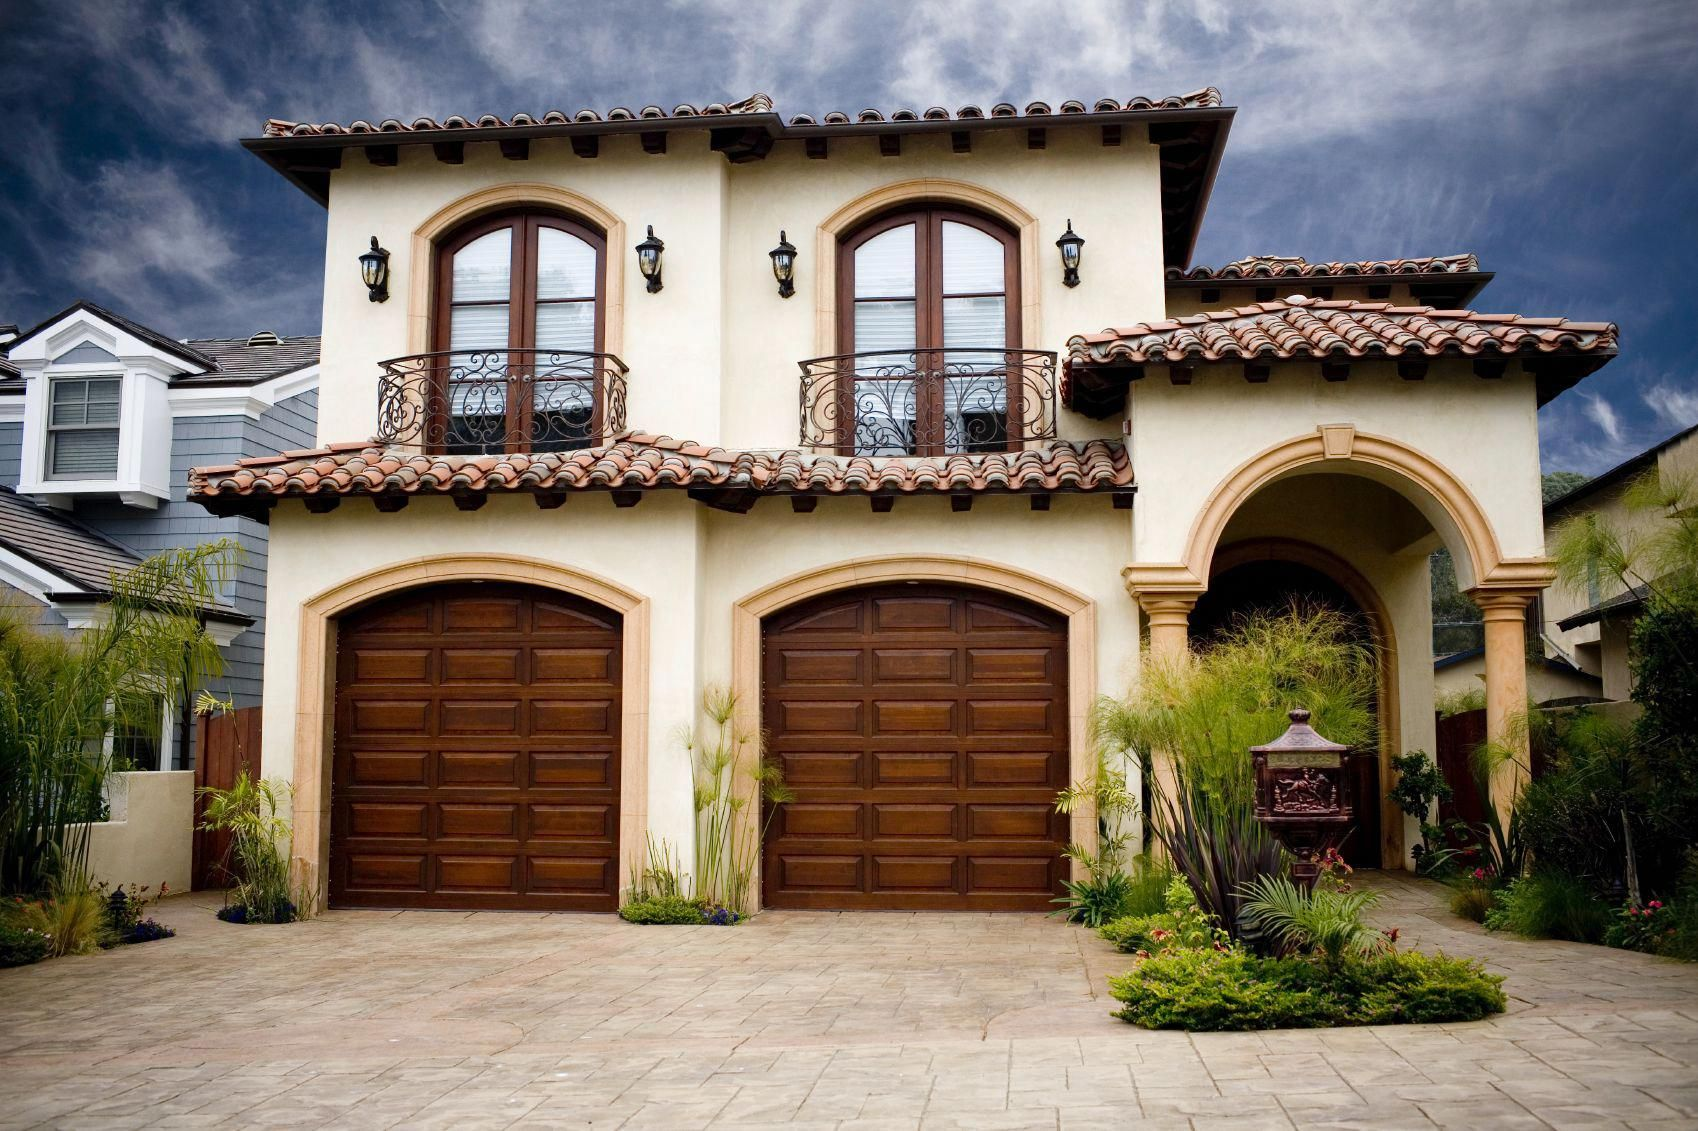 Double Single Car Garages Multicolored Tile Roof Covered Arched Entry Lights Anchoring The Window Spanish Style Homes Garage Doors Garage Door Spring Repair